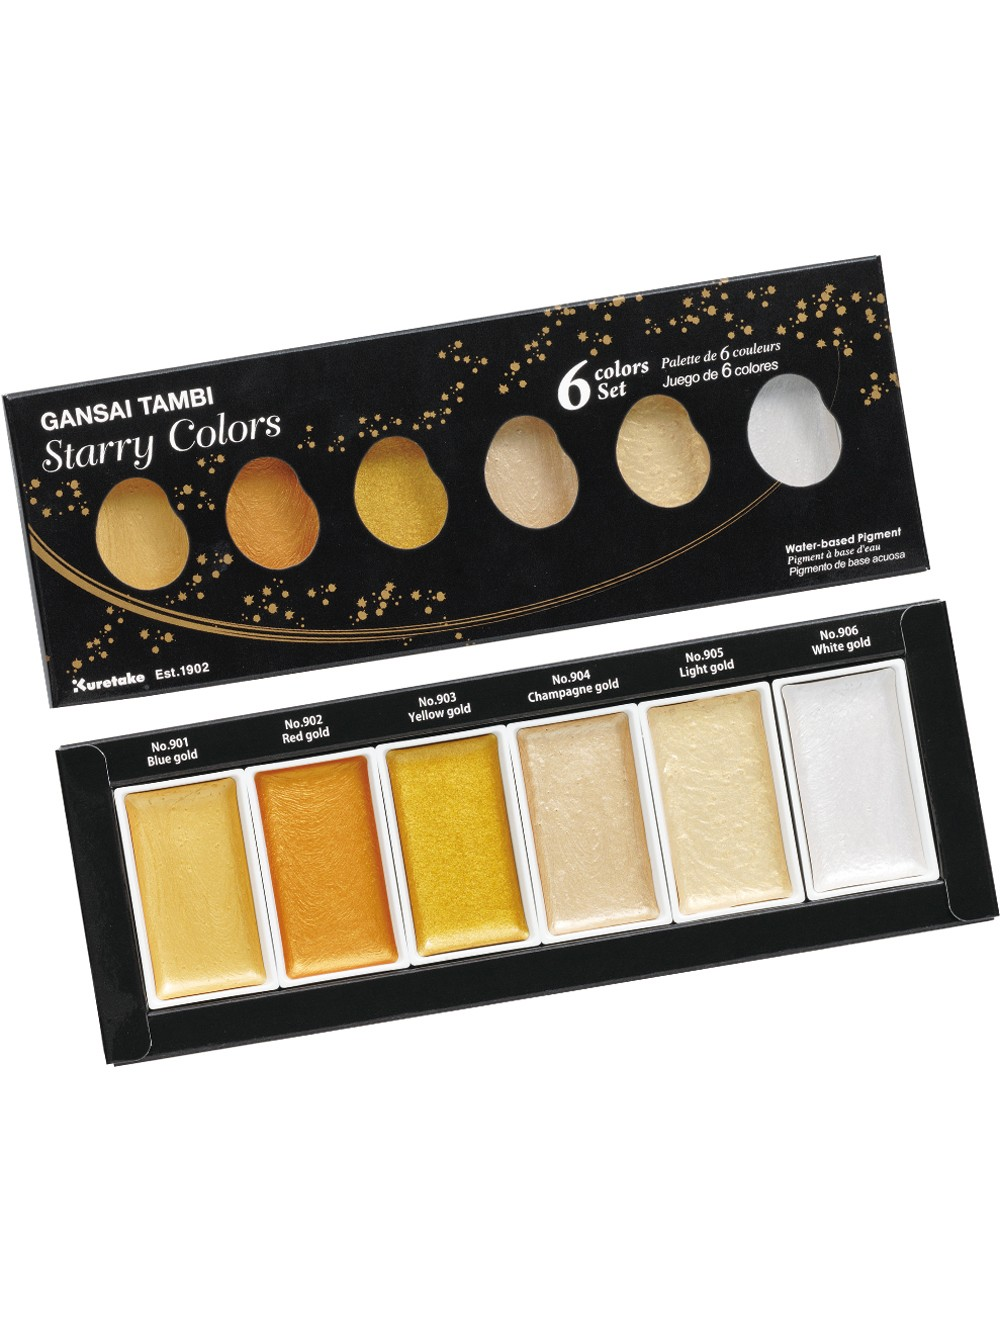 KURETAKE Gansai Tambi 6 Set - Starry Colours